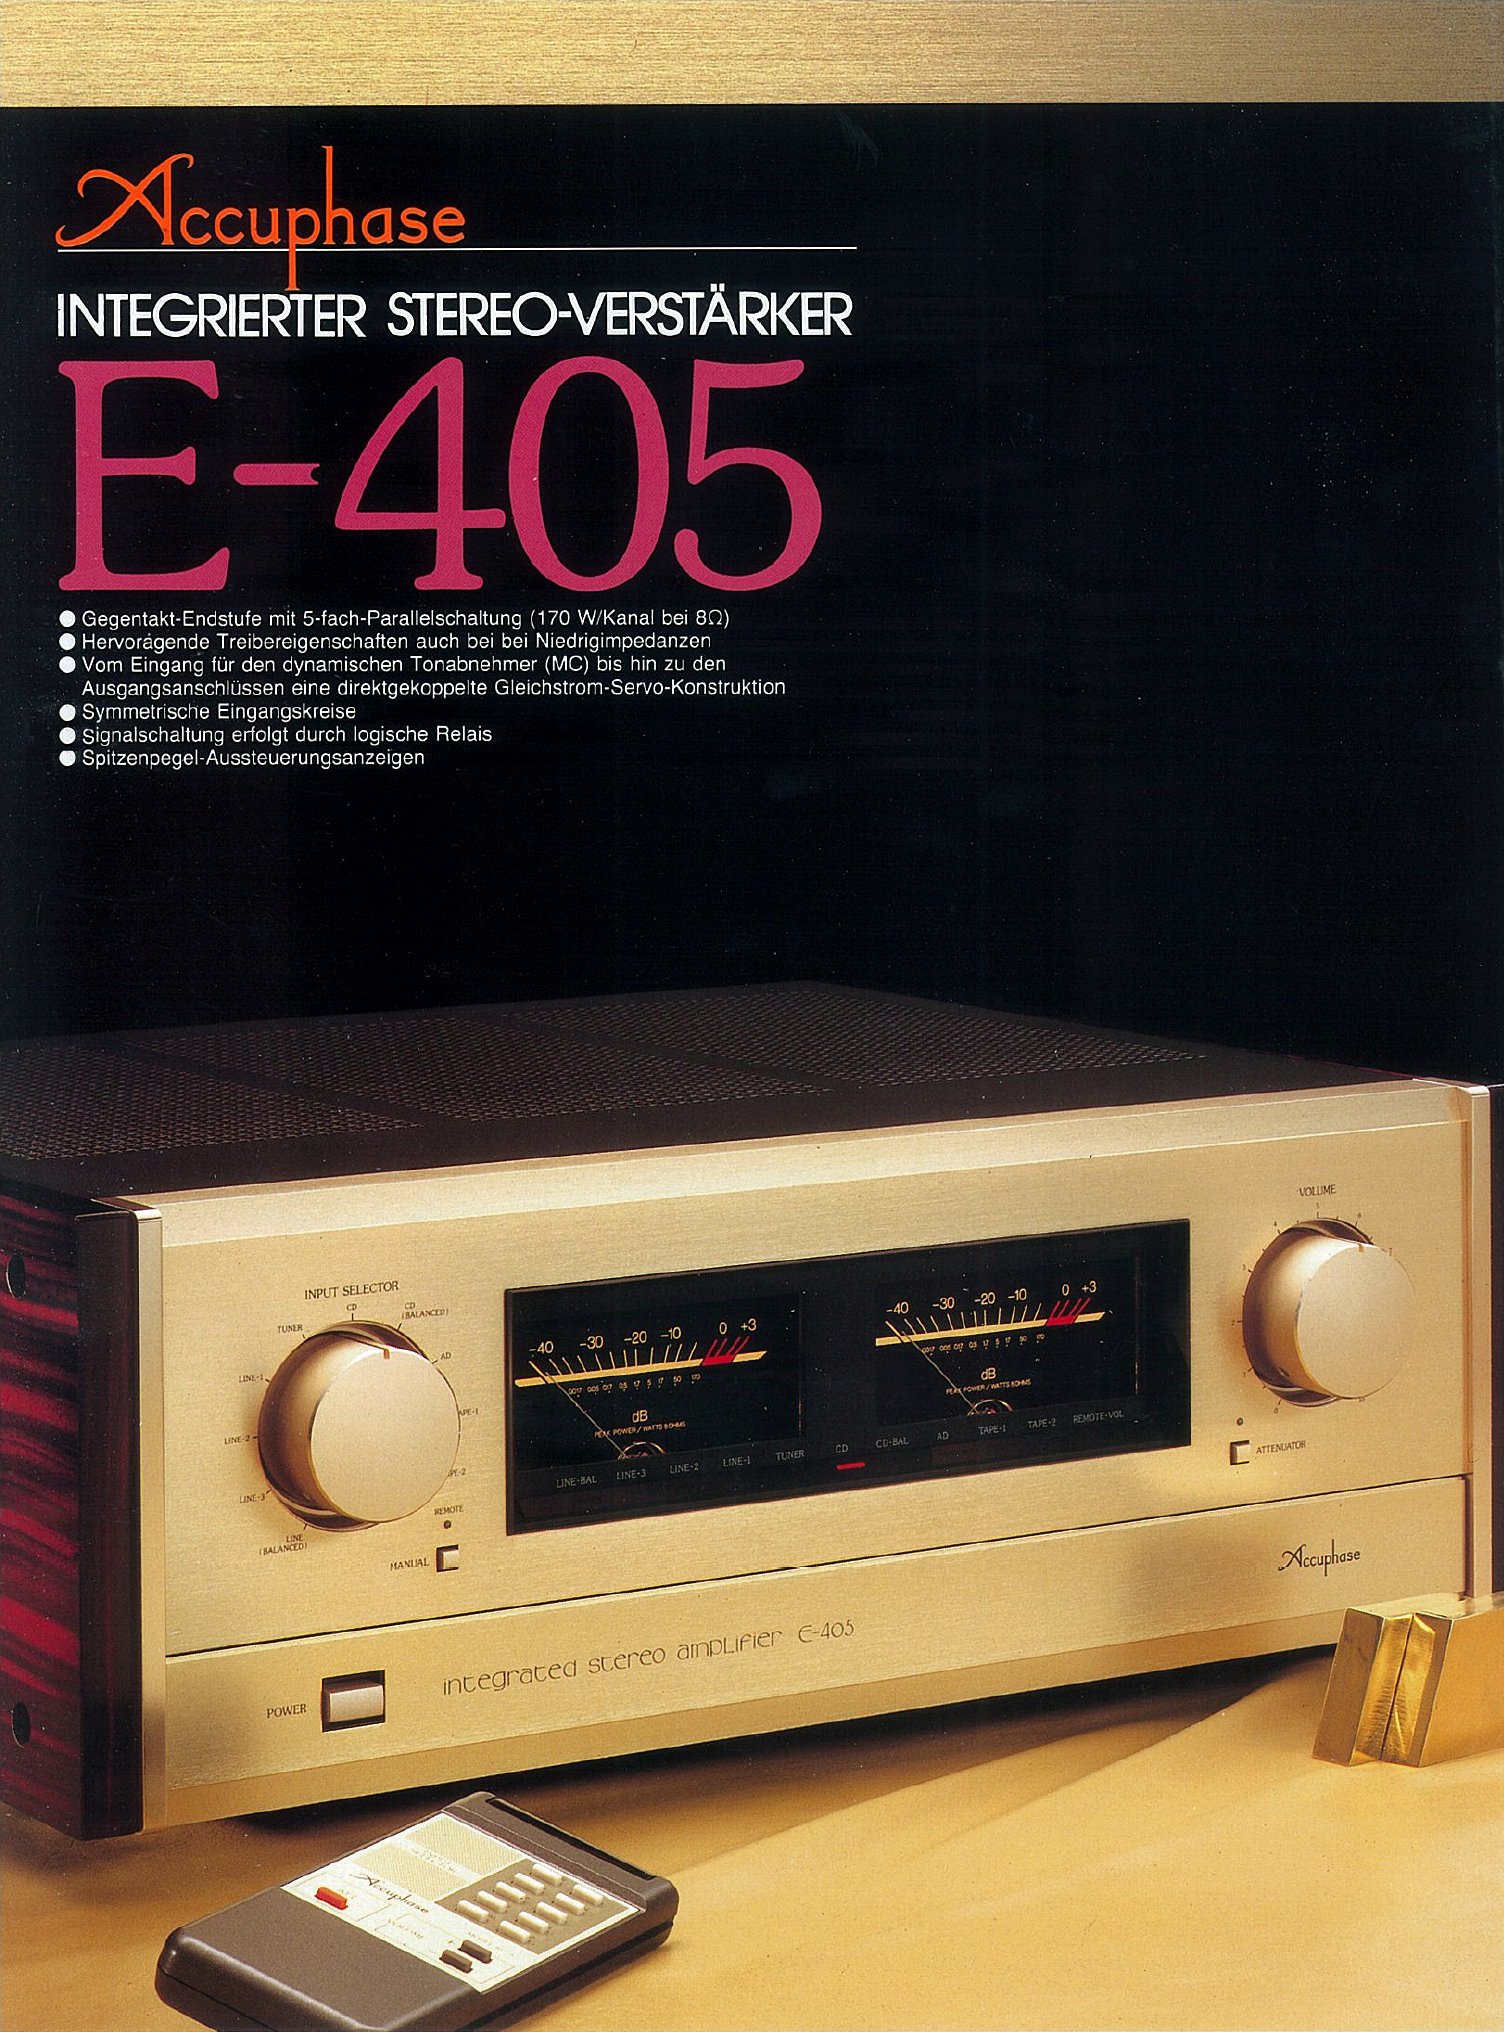 Accuphase E-405-Prospekt-1.jpg